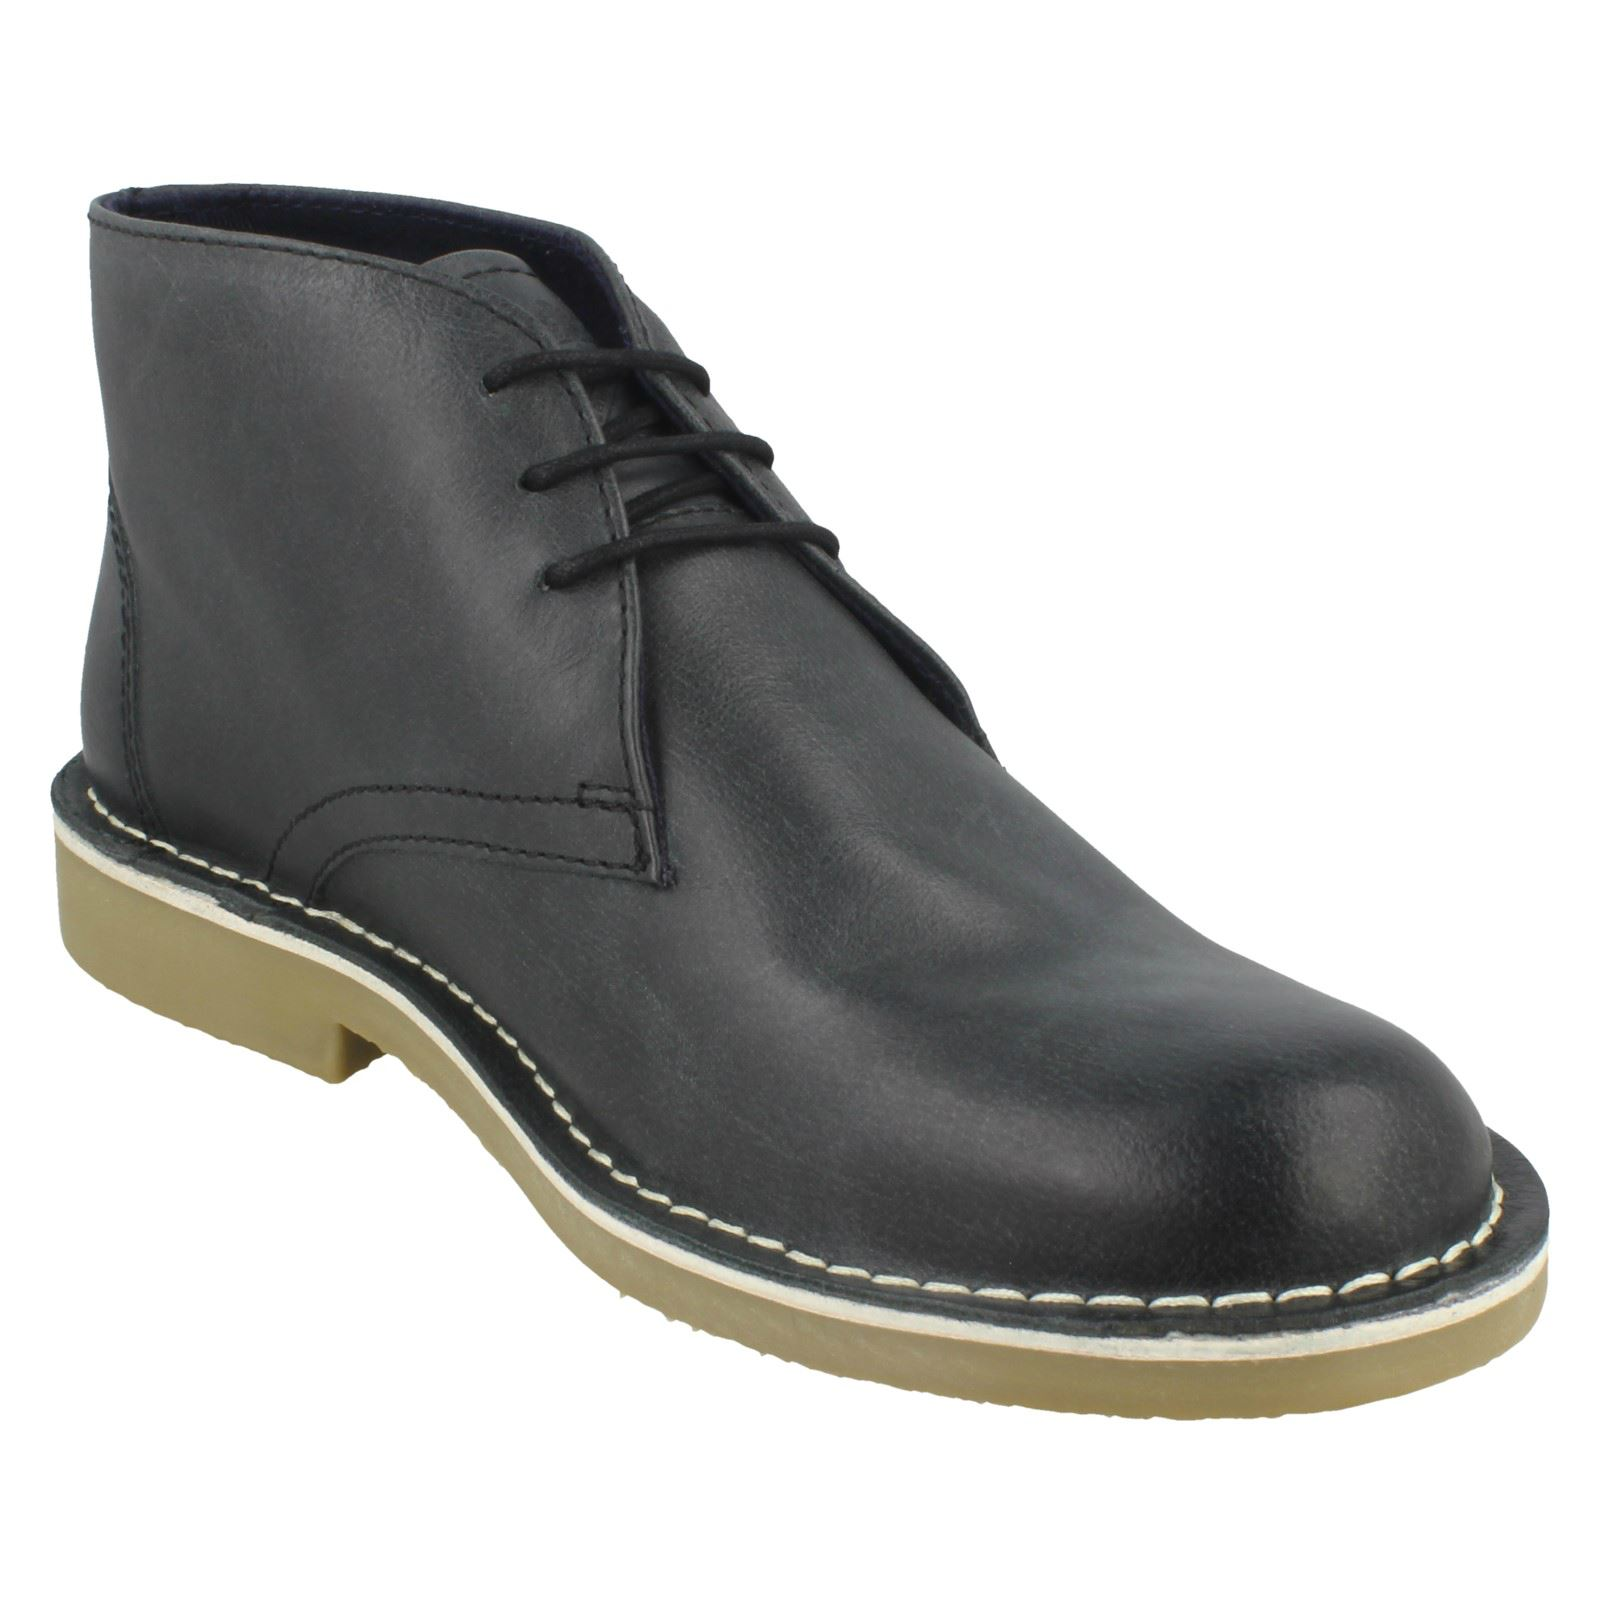 Mens Lambretta Ankle Boots Canary LG 14131